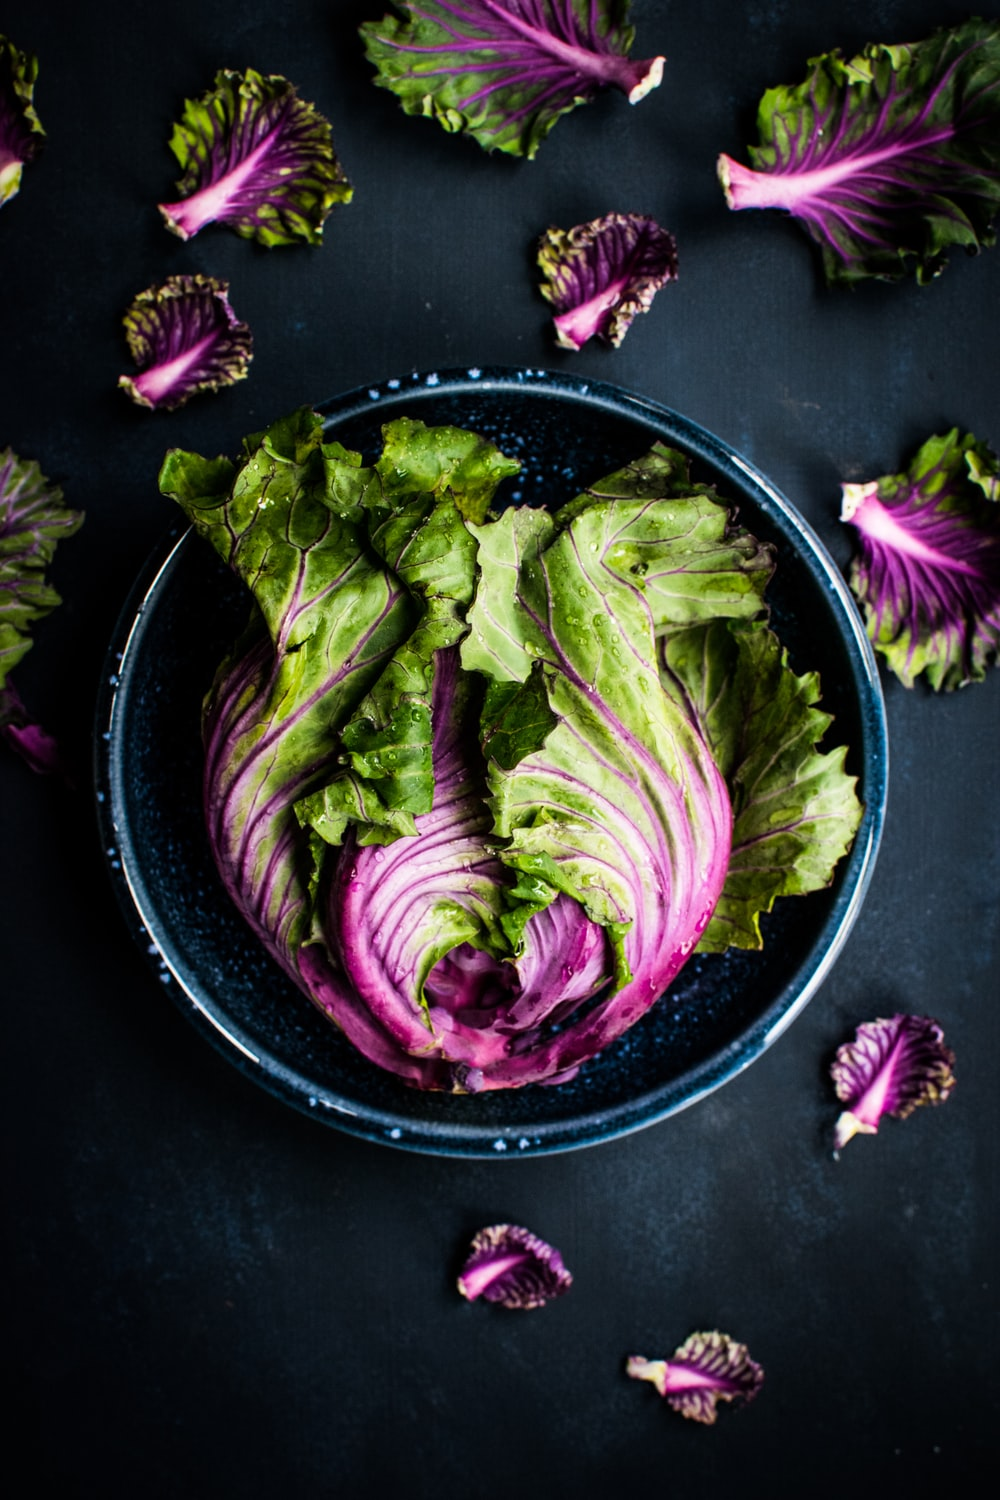 purple and green vegetable in black bowl